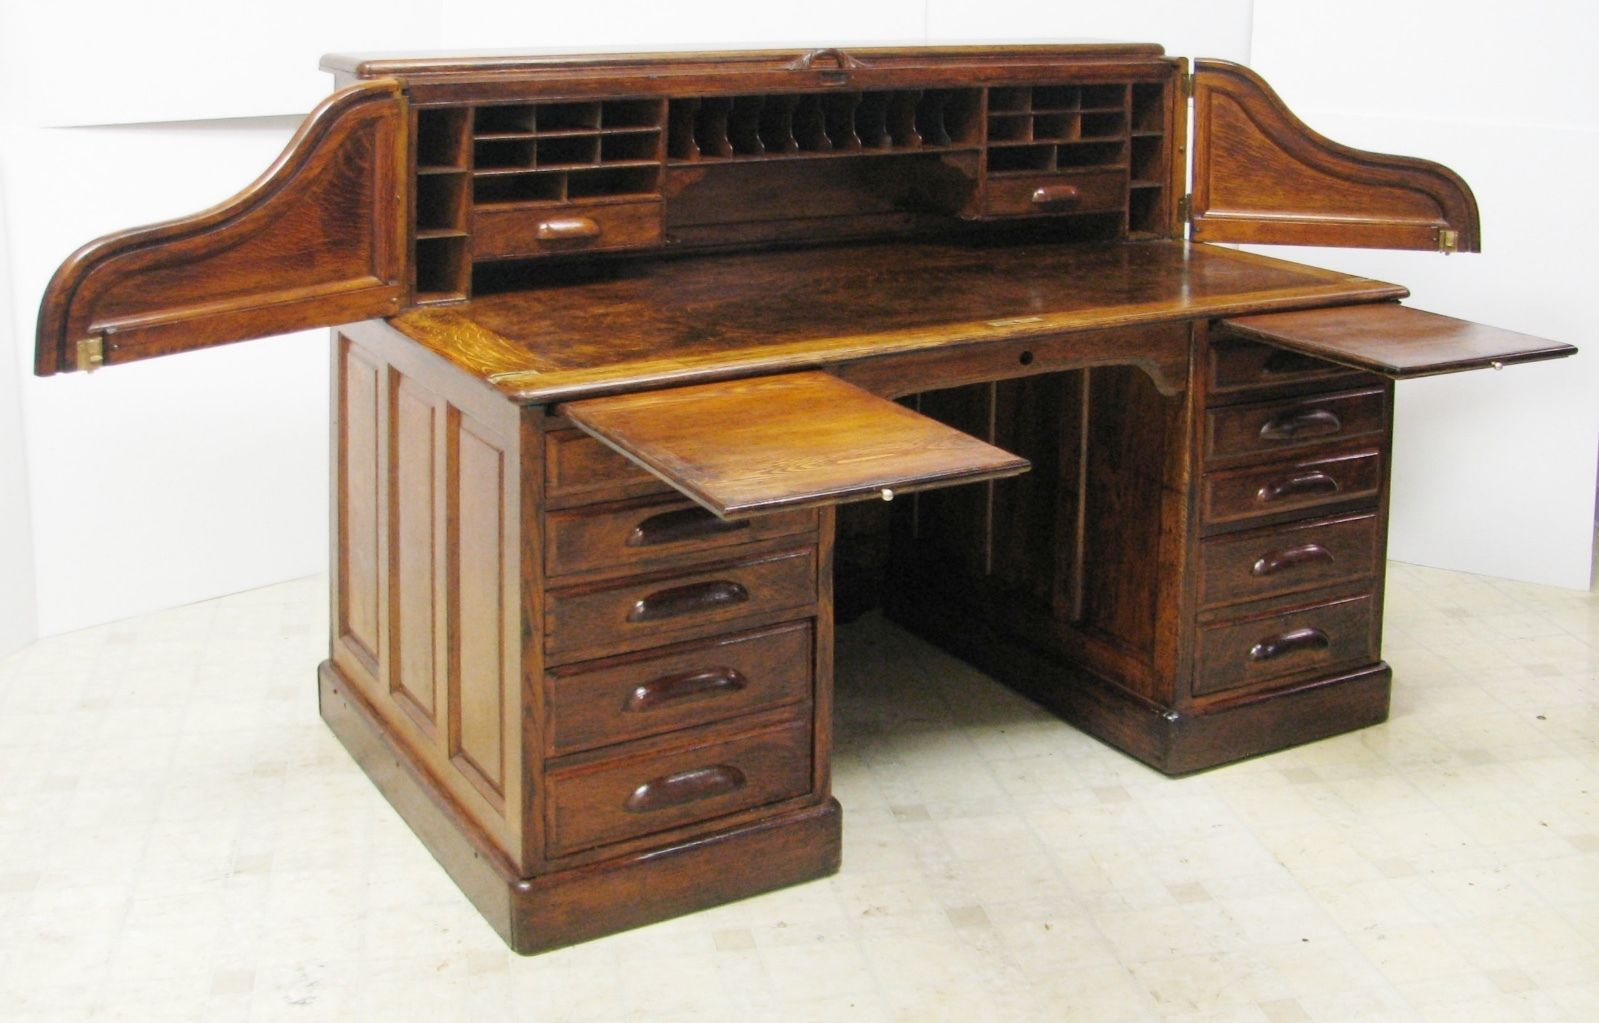 Antique Roll Top Bankers Desk - Mid 1800's - Large 60